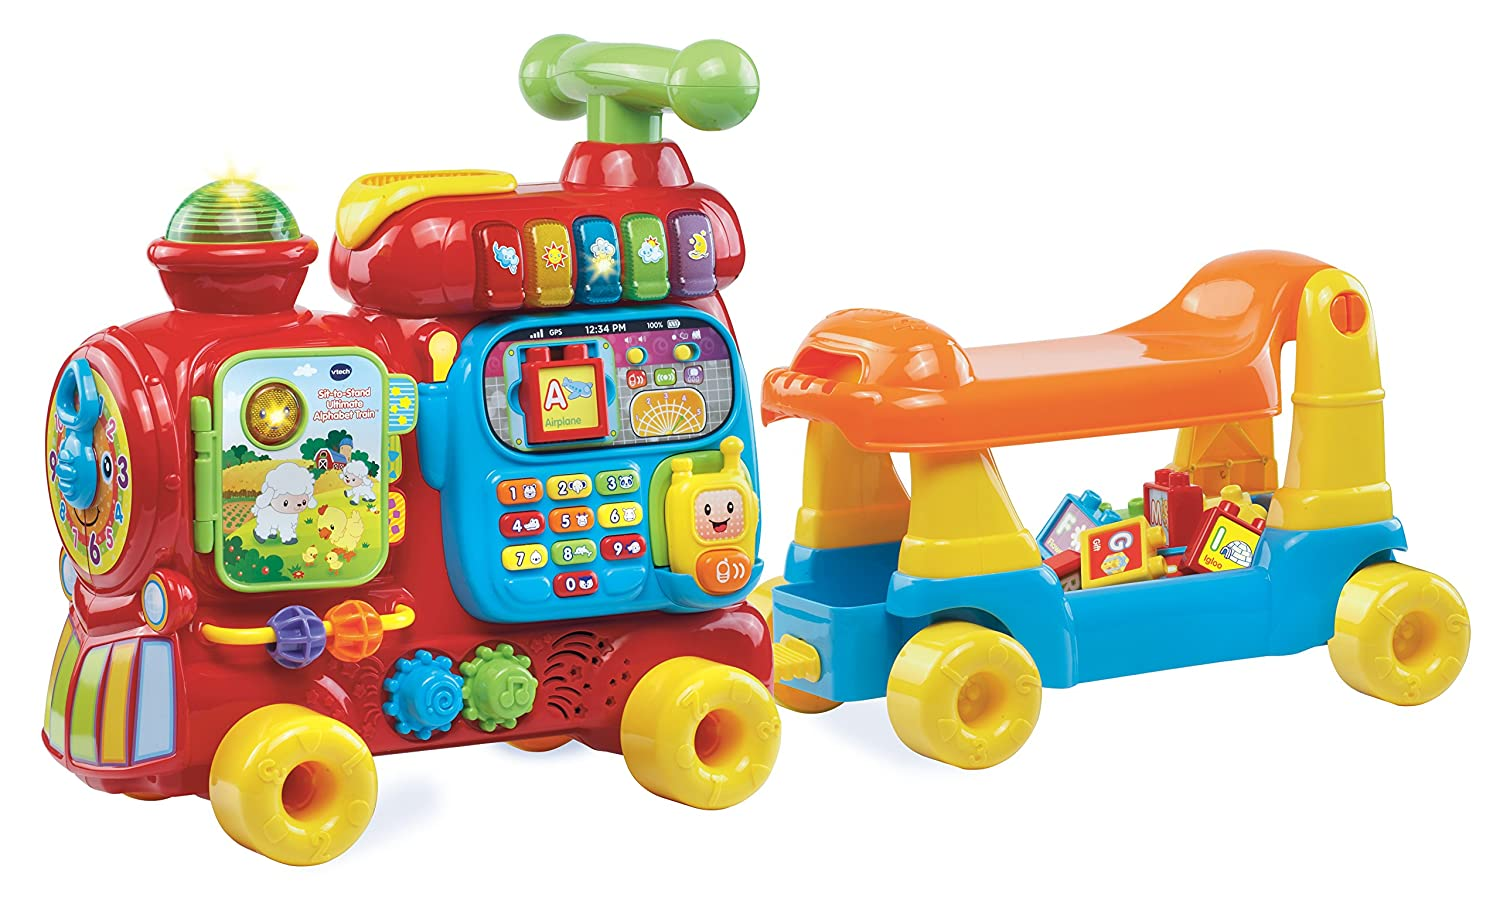 Toys For Old : The ultimate list of cool toys for year old boys in